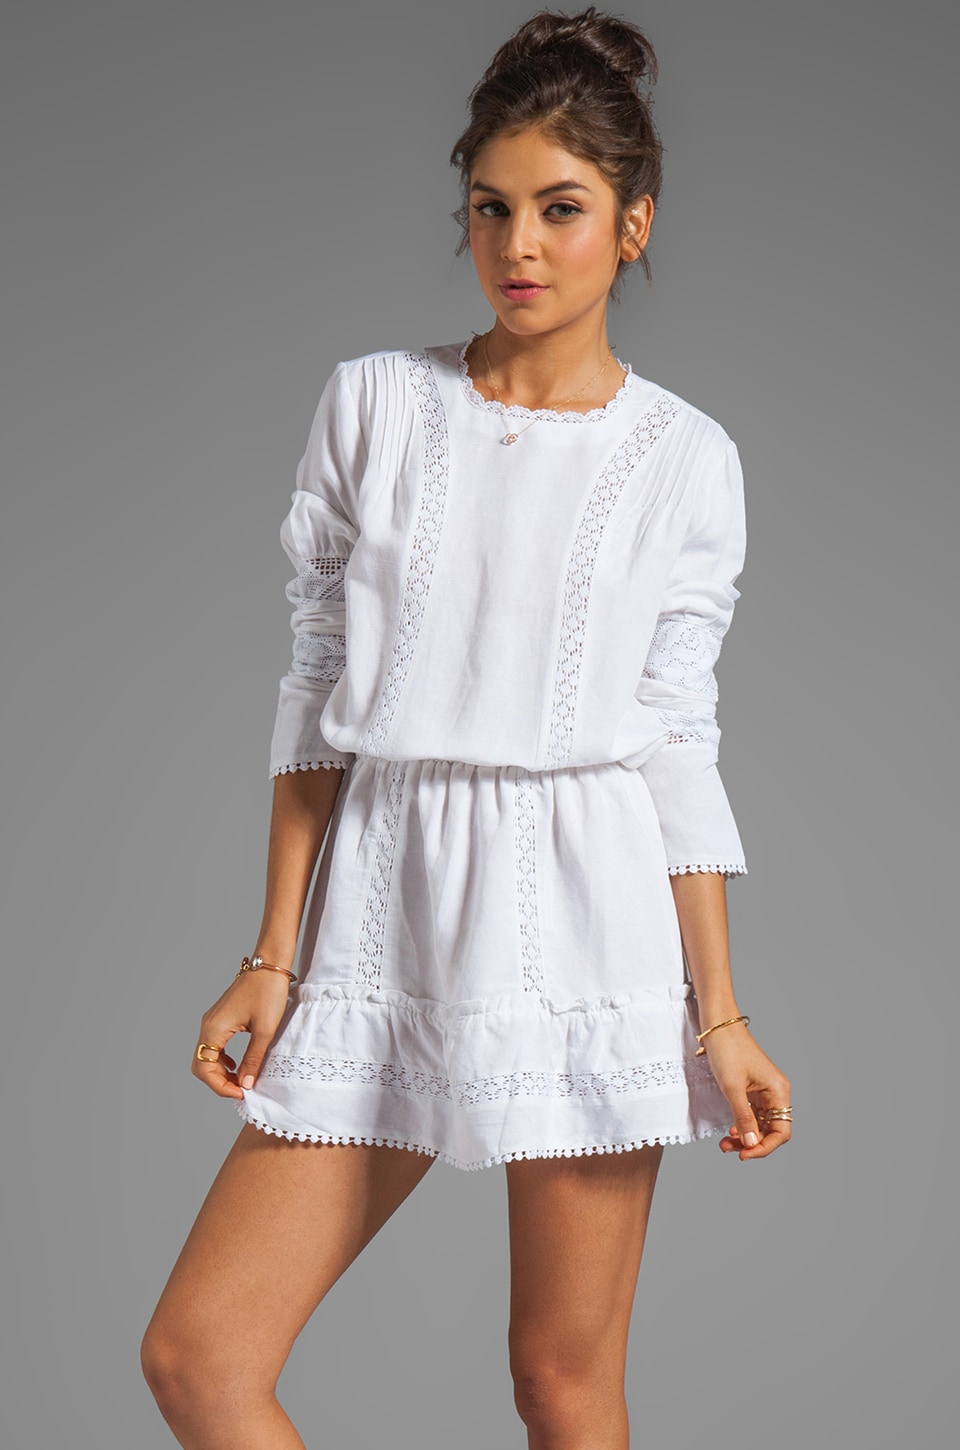 ANINE BING Bohemian Dress in White